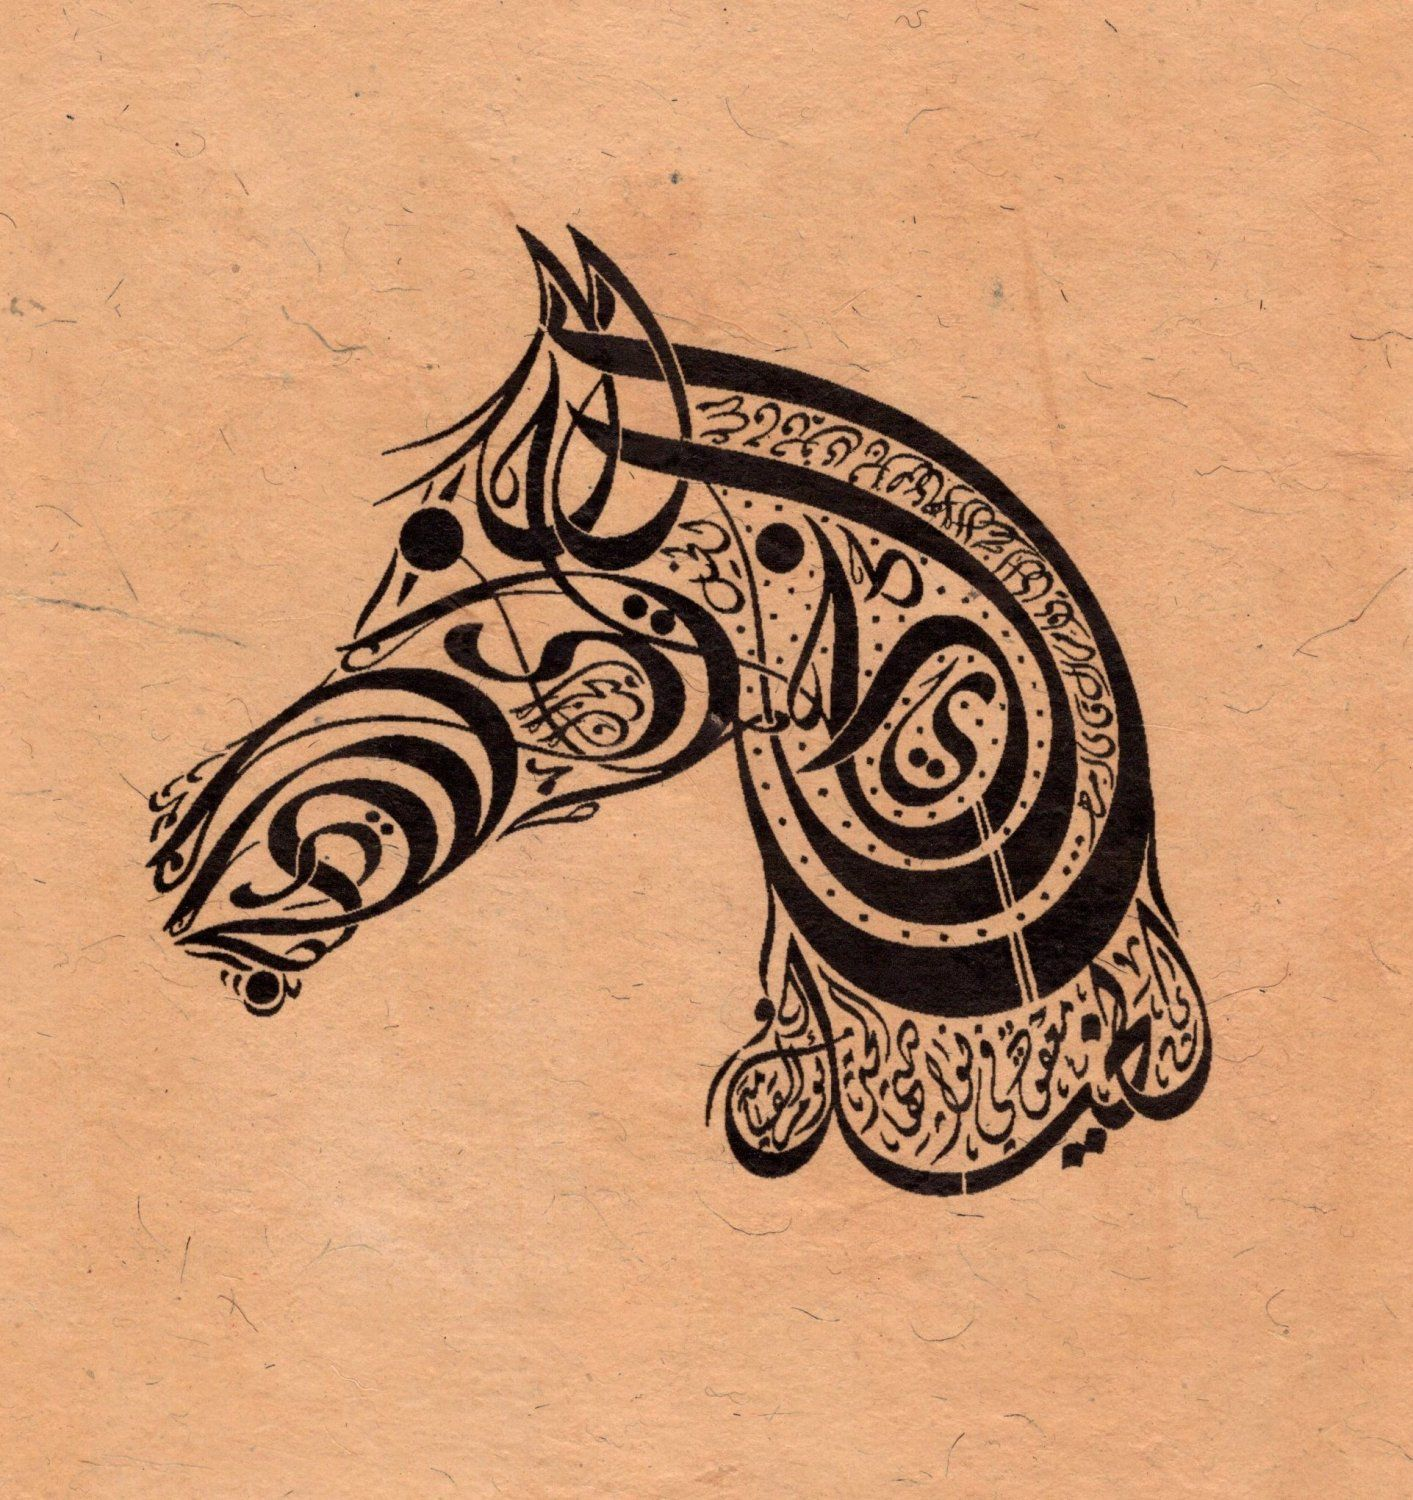 Pin by Yassi G on Persian & Arabic calligraphy | Pinterest ...